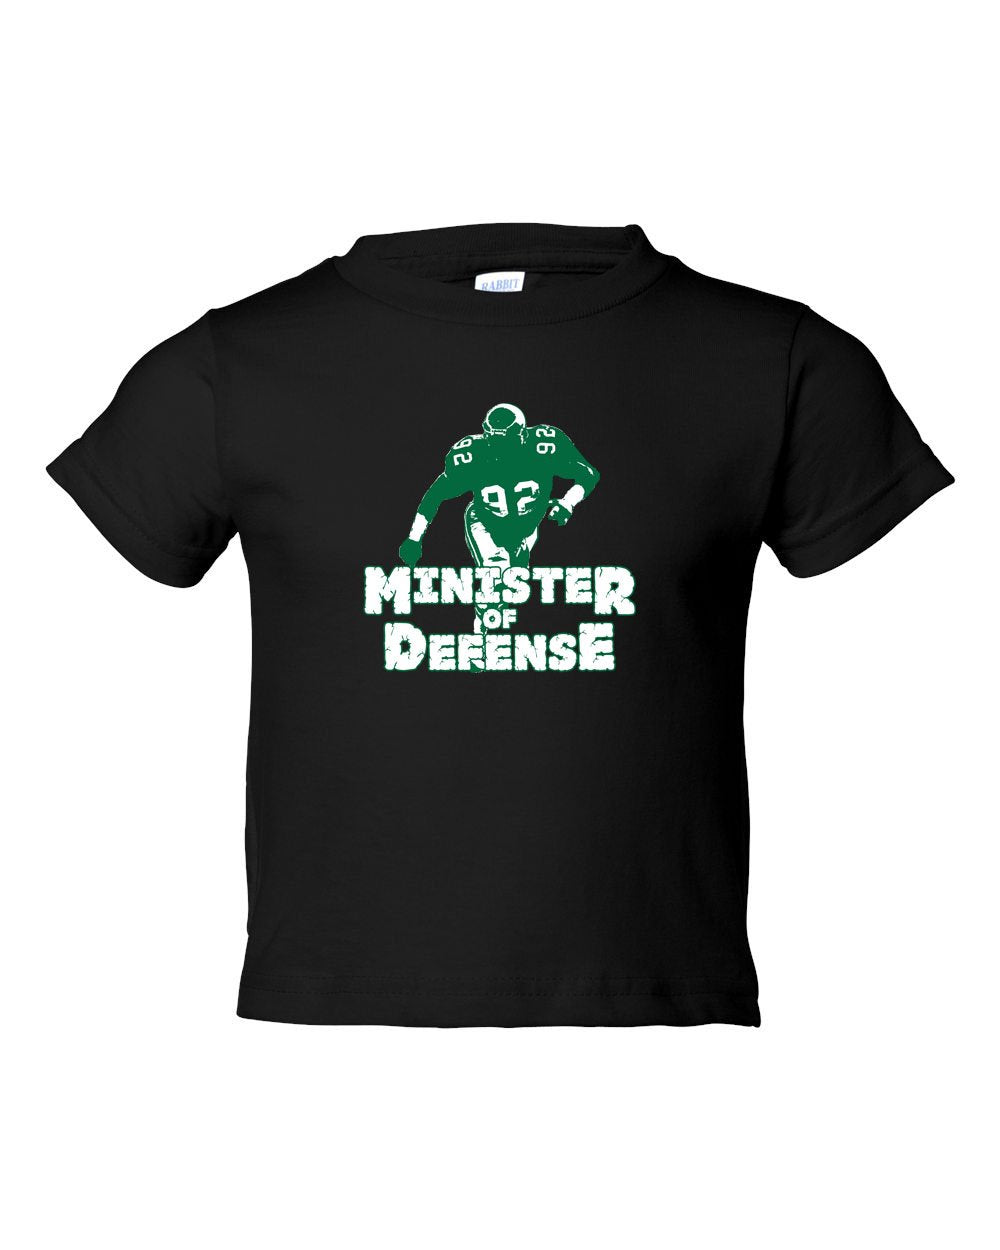 Minister Of Defense TODDLER T-Shirt